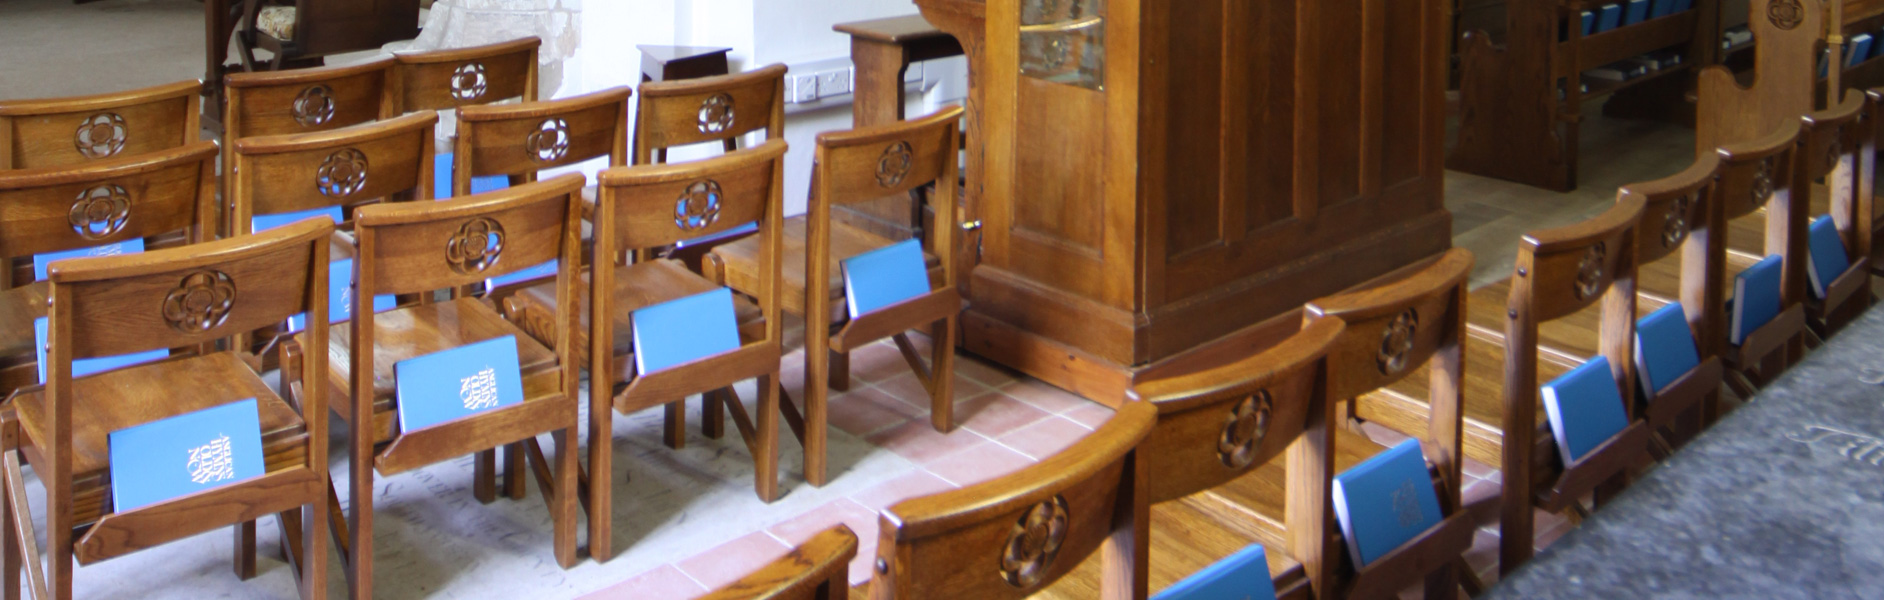 ICS chairs designed for St. James' Church Finchemstead